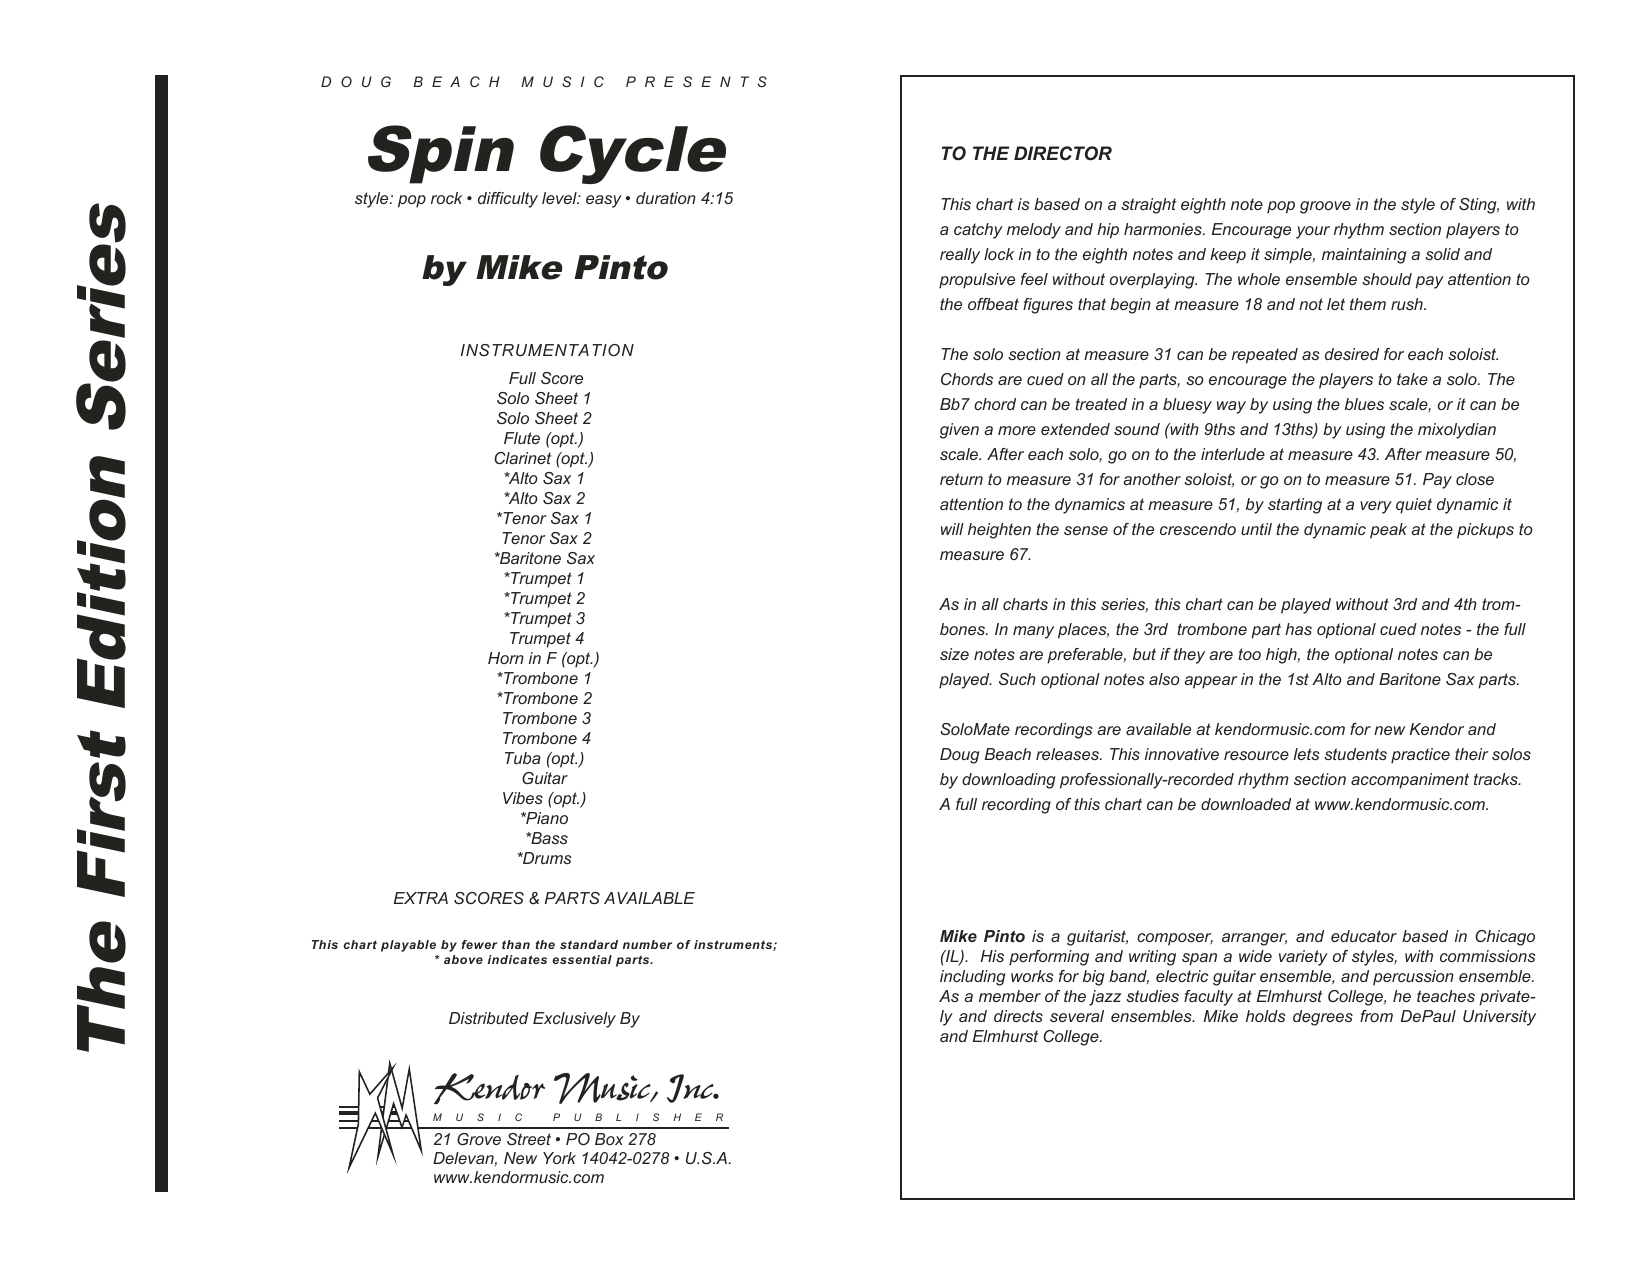 Spin Cycle - Full Score Sheet Music